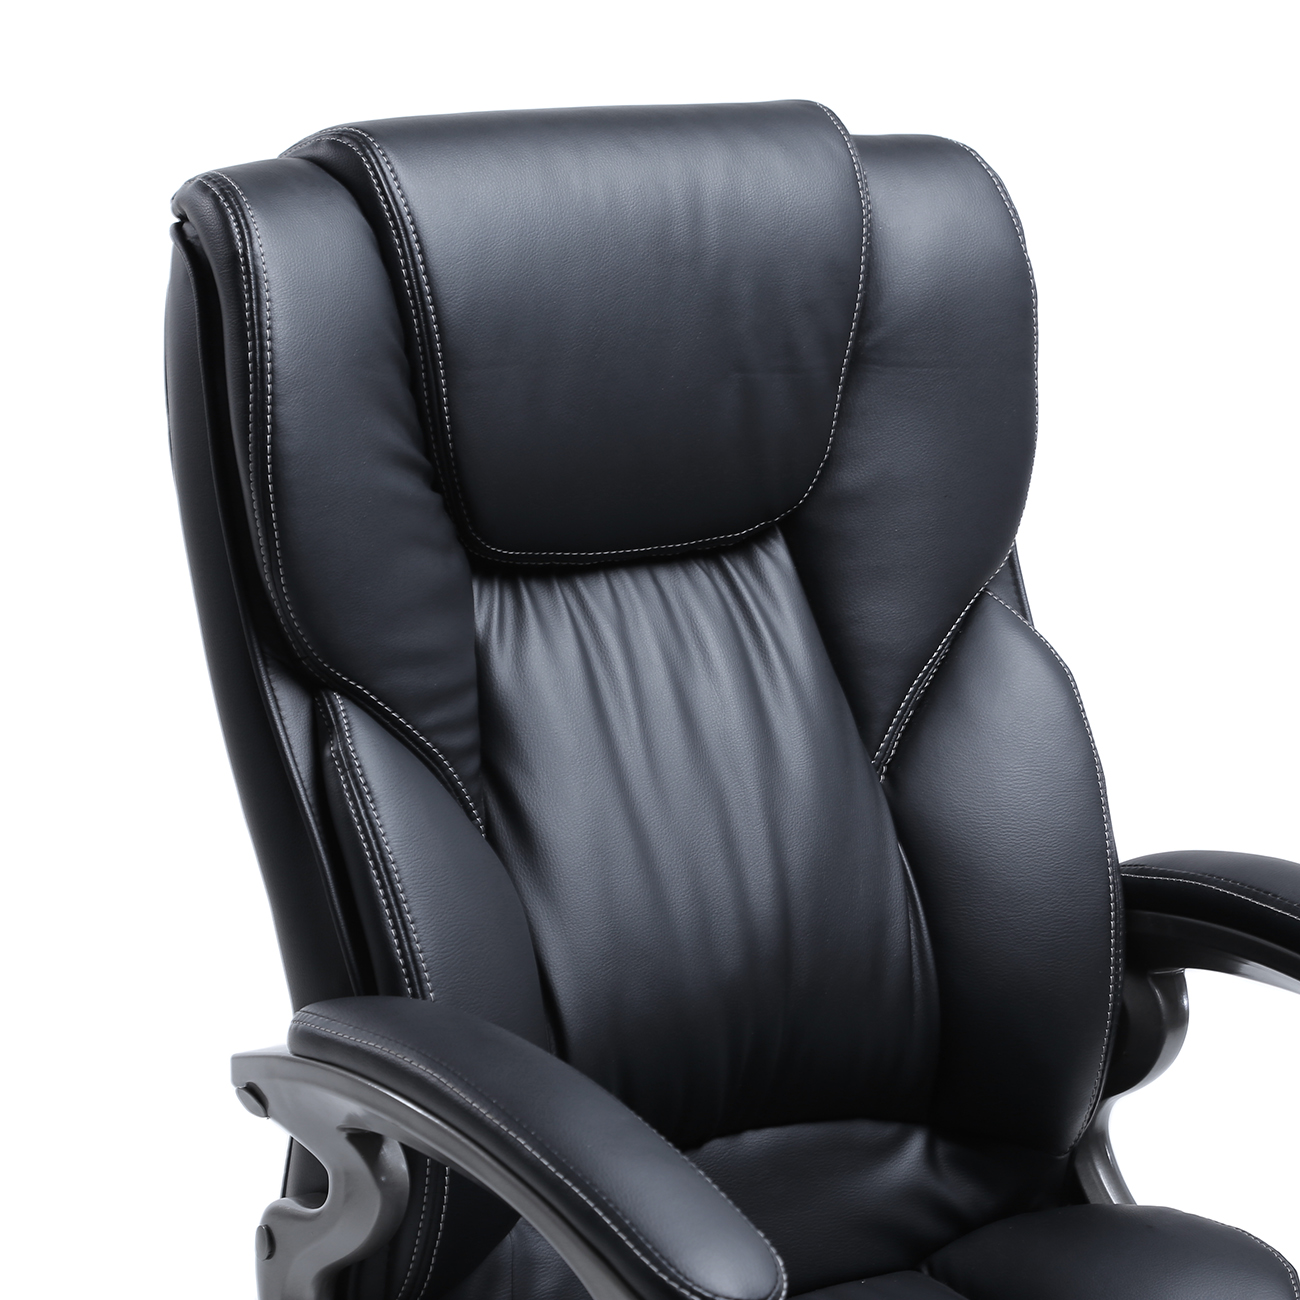 Ergonomic Computer Chair Black Pu Leather High Back Office Chair Executive Task